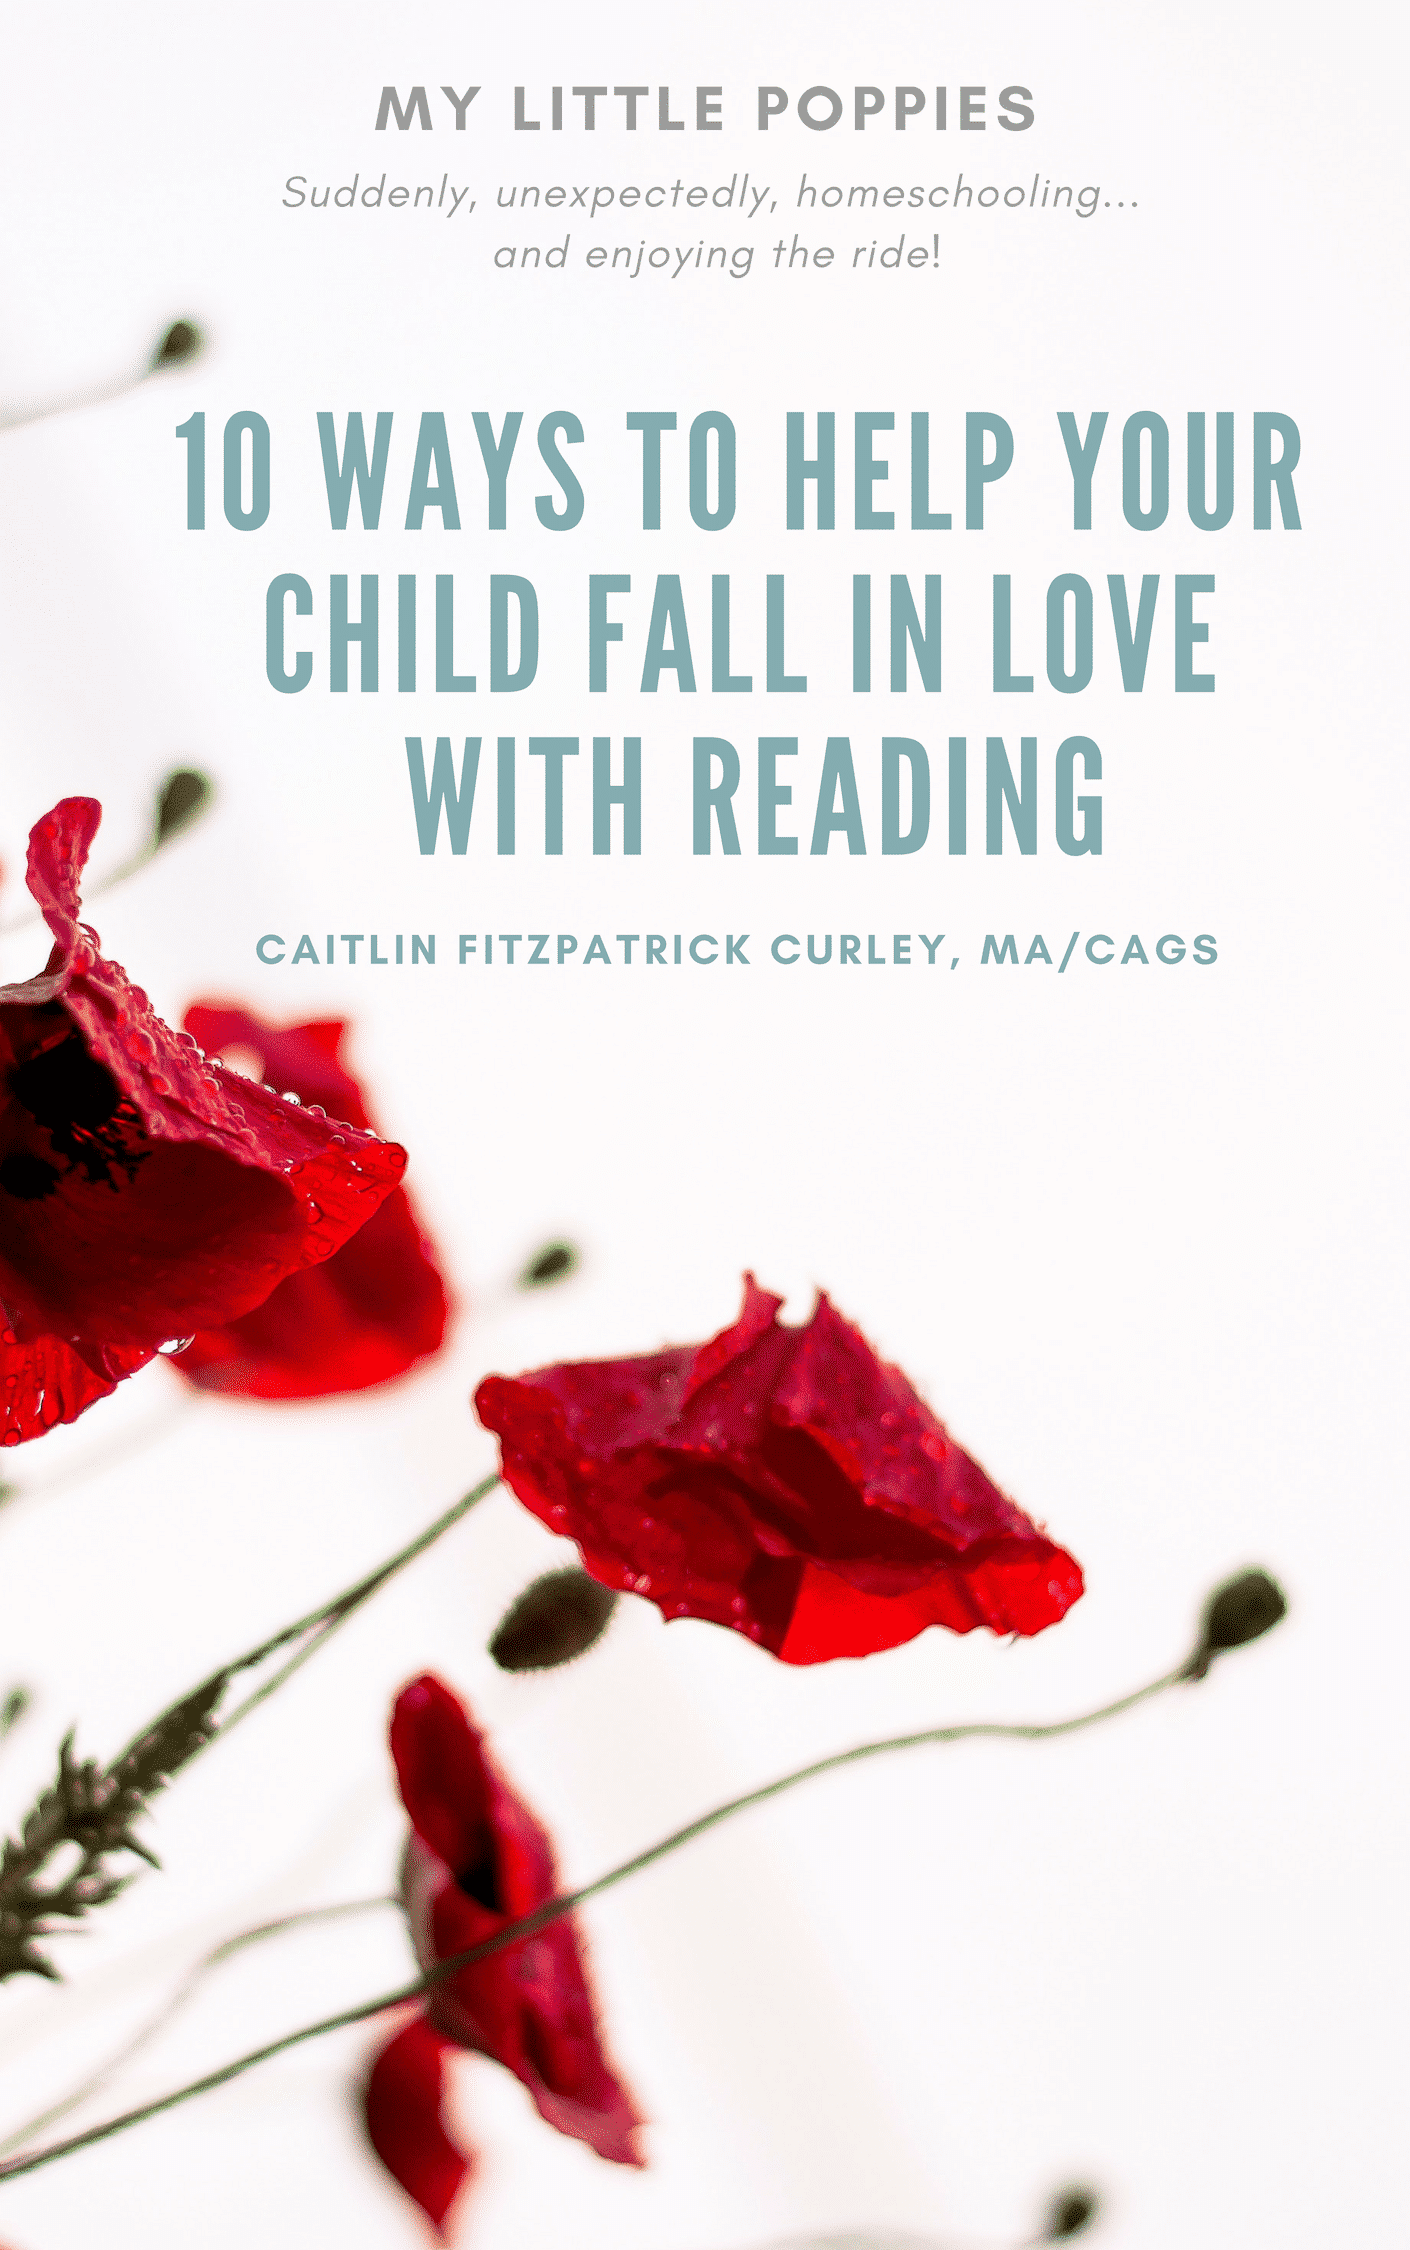 10 Ways to Help Your Child Fall in Love with Reading | Caitlin Fitzpatrick Curley, MA/CAGS, school psychologist and creator of My Little Poppies